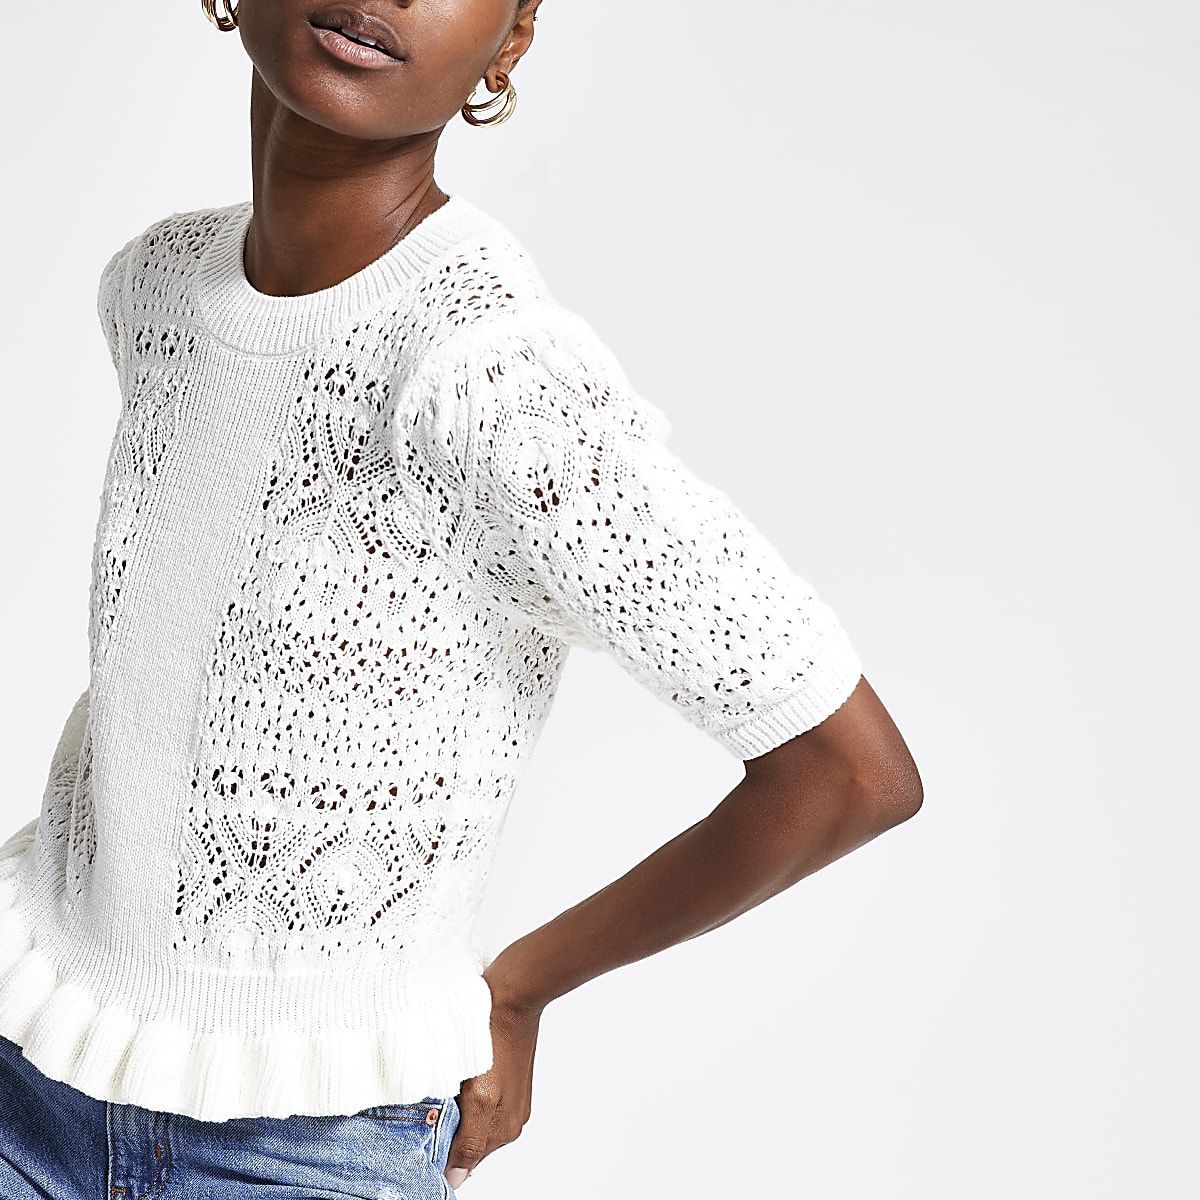 White textured knitted top